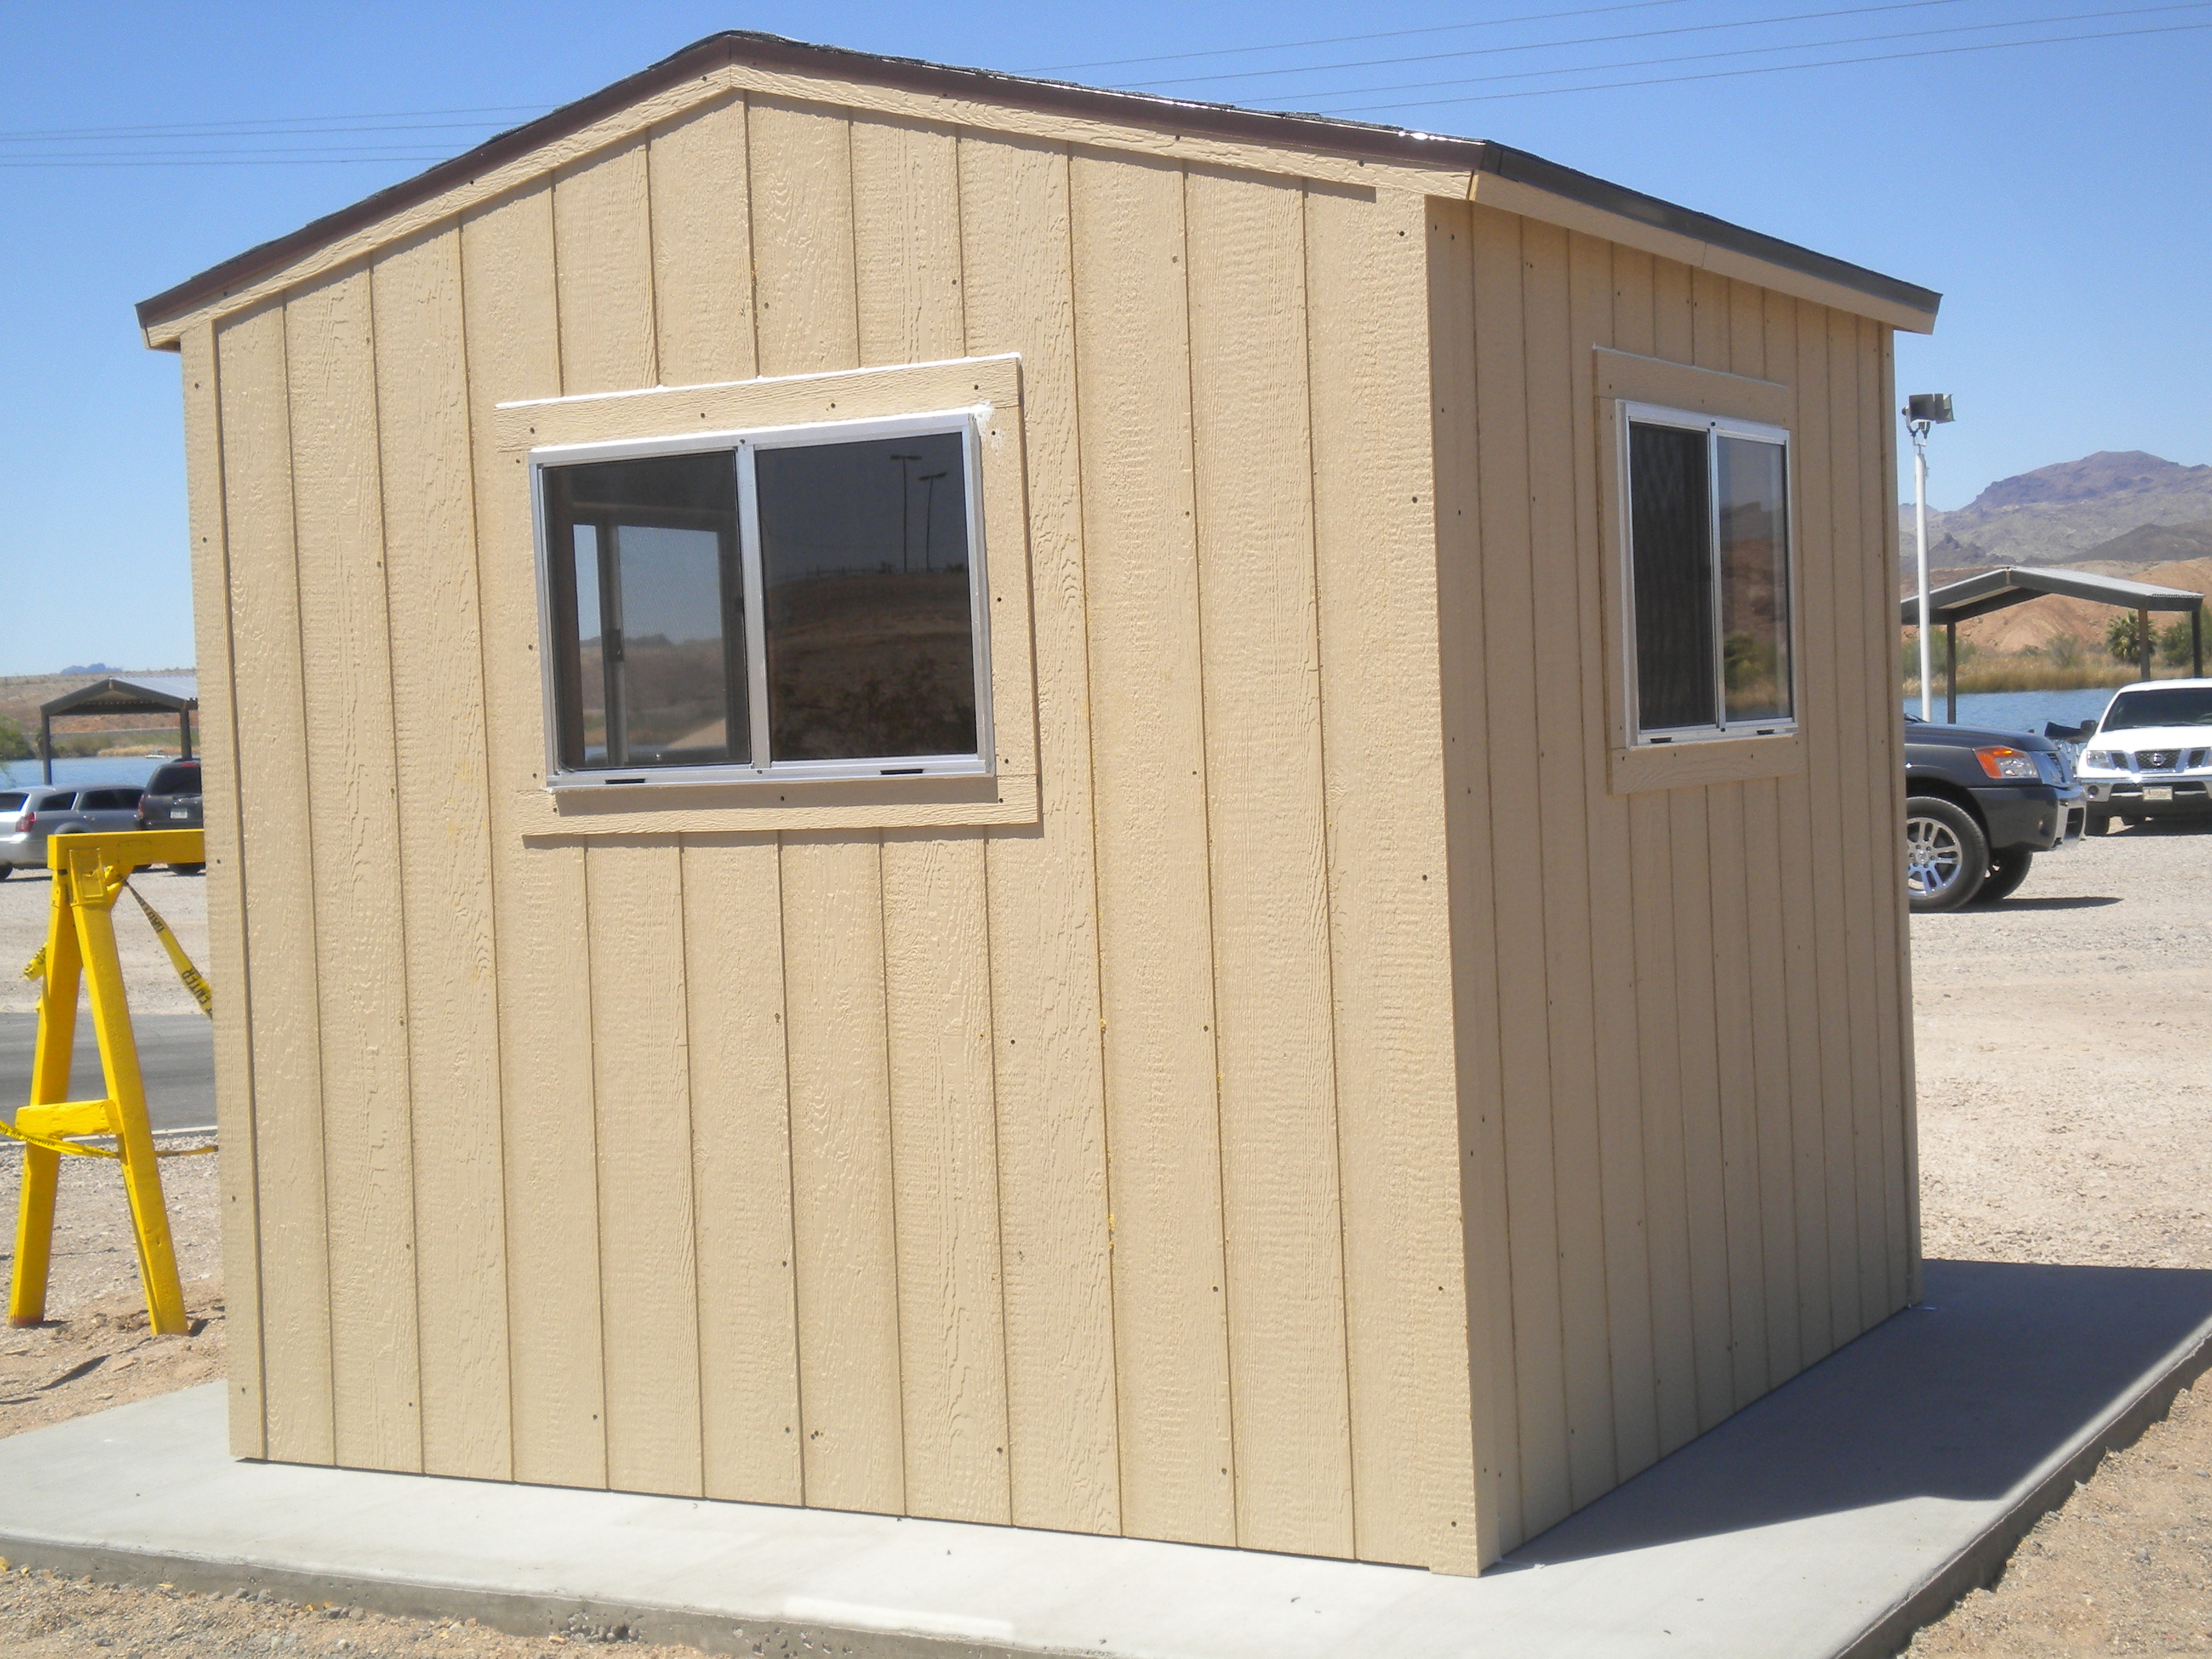 Discount sheds 10430 e apache trl apache junction az 85120 for Inexpensive sheds